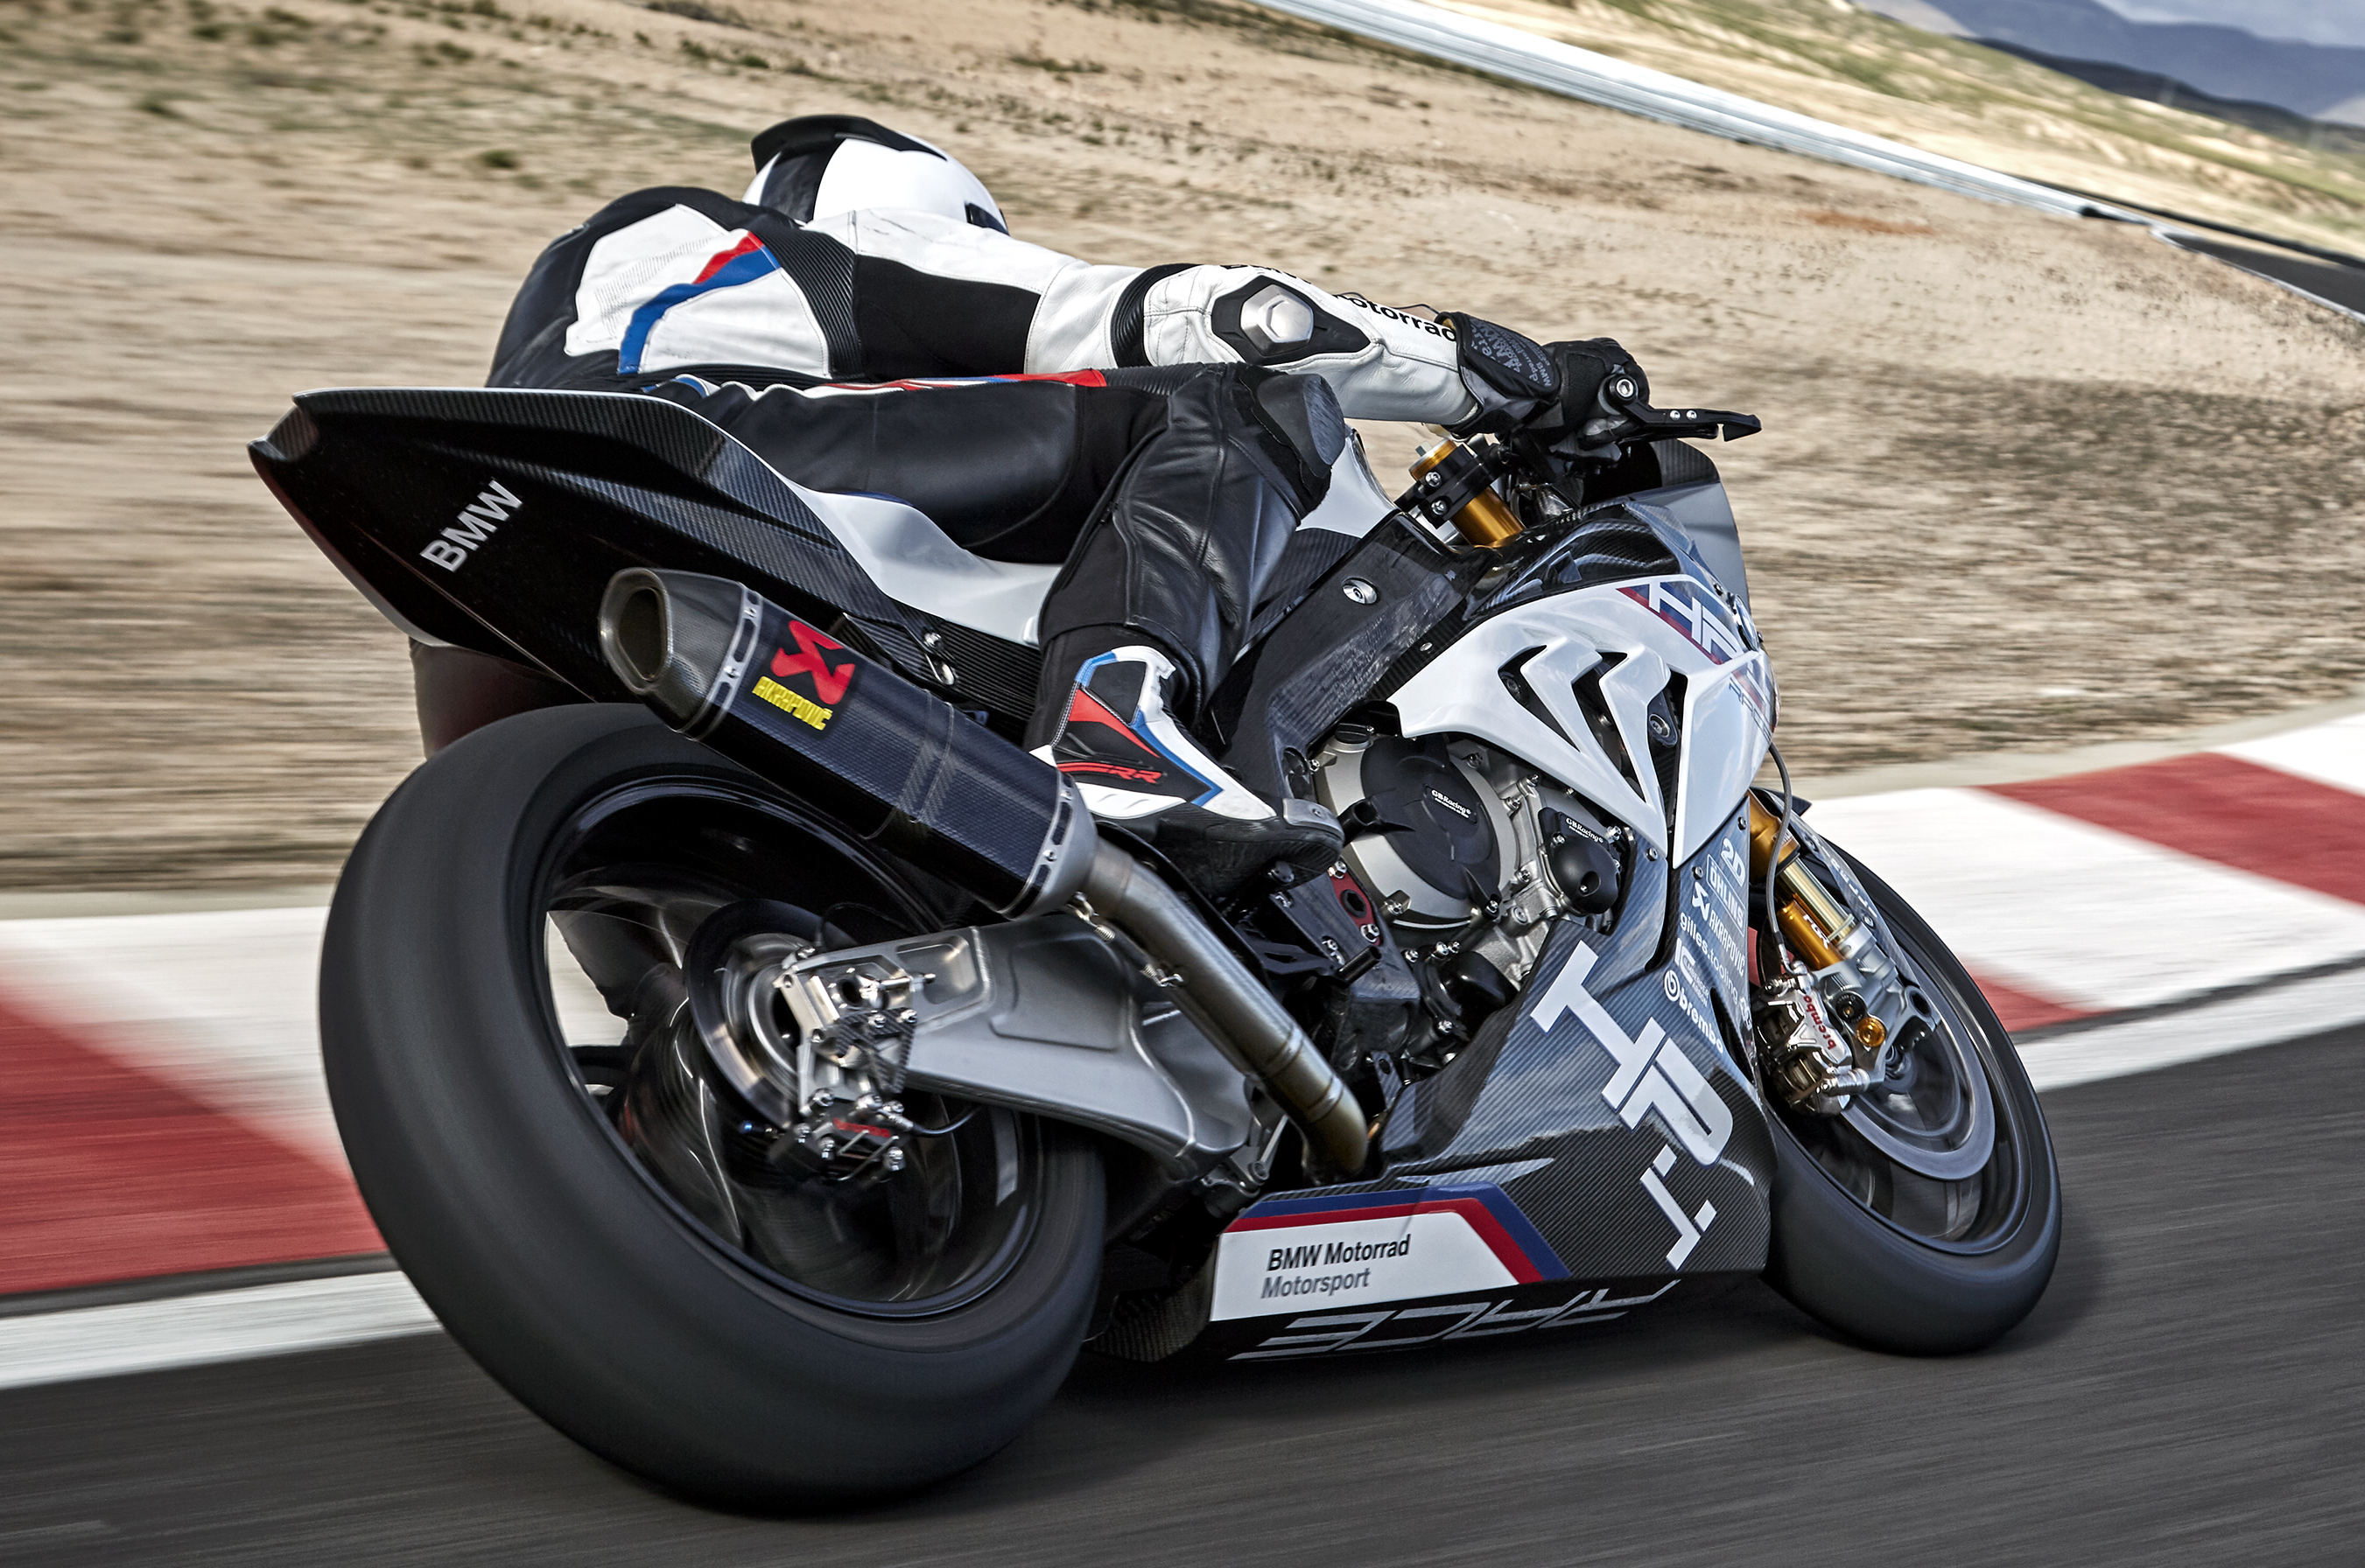 2018 bmw s1000rr hp4.  hp4 to be expected at this level of performance is brembo braking using a pair  gp4r callipers with titanium pistons and 320 mm diameter rotors in front  intended 2018 bmw s1000rr hp4